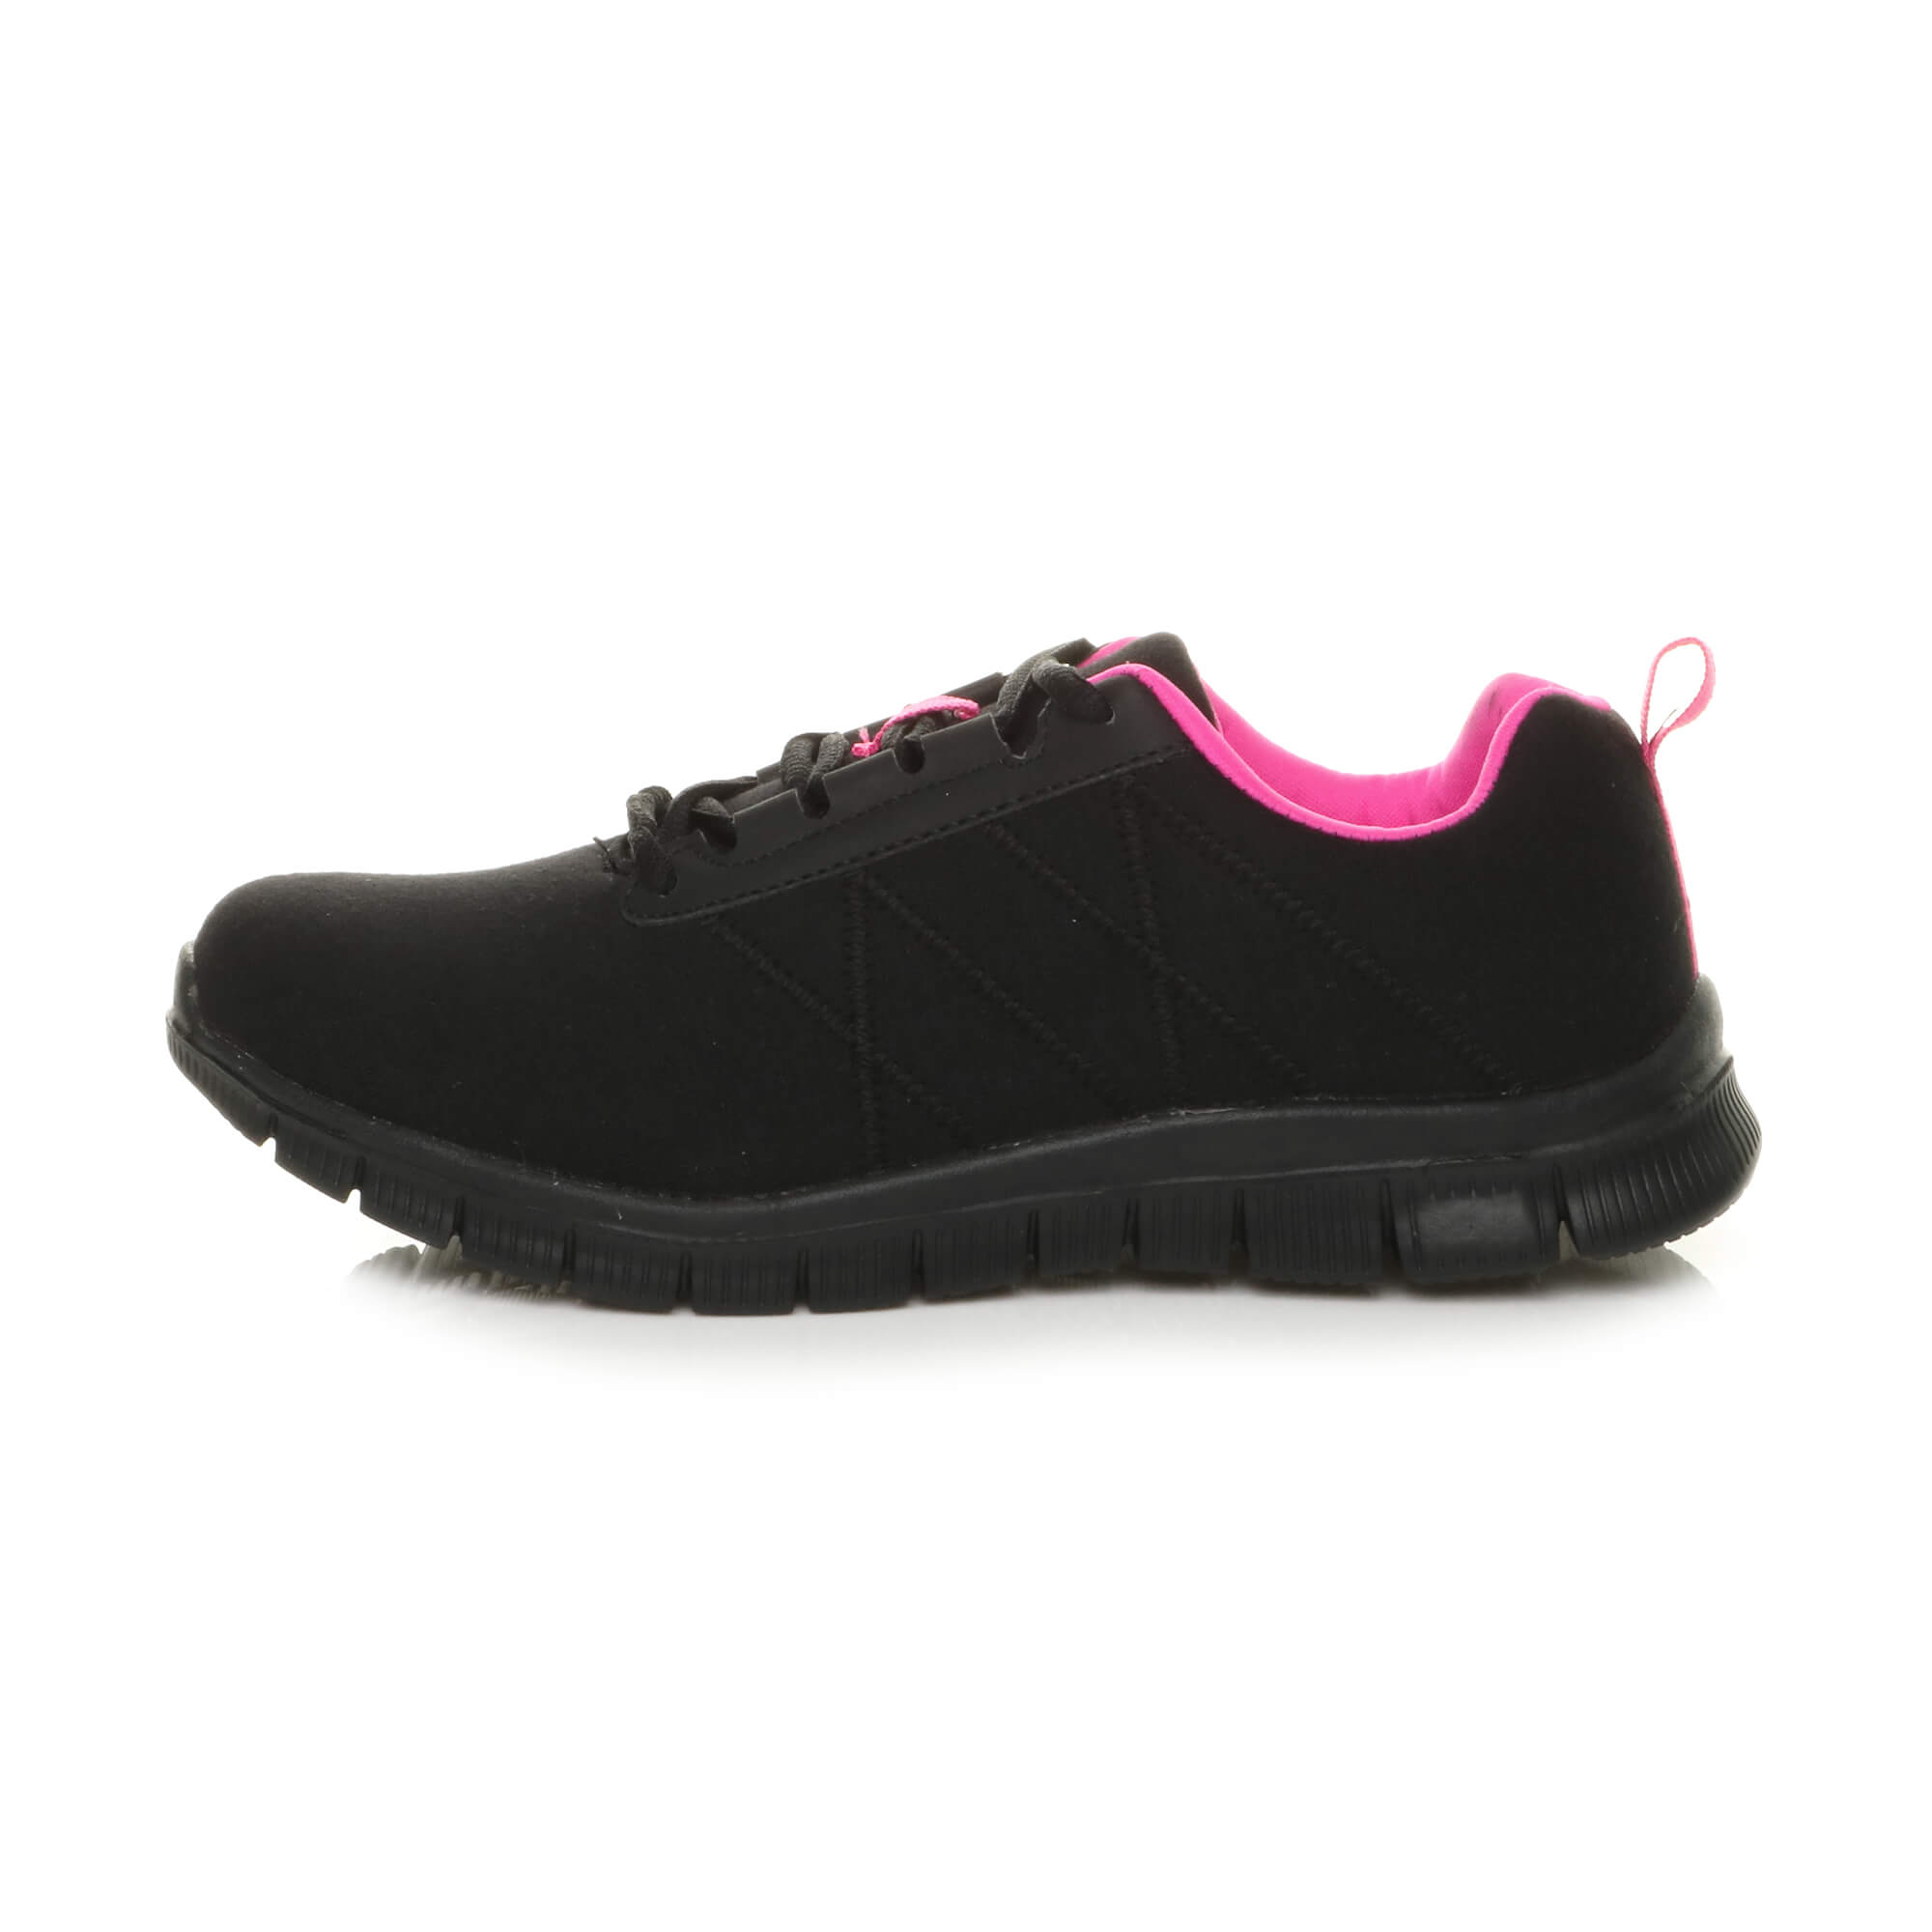 Womens-ladies-comfort-memory-foam-lace-up-trainers-activewear-sneakers-gym-shoes thumbnail 3